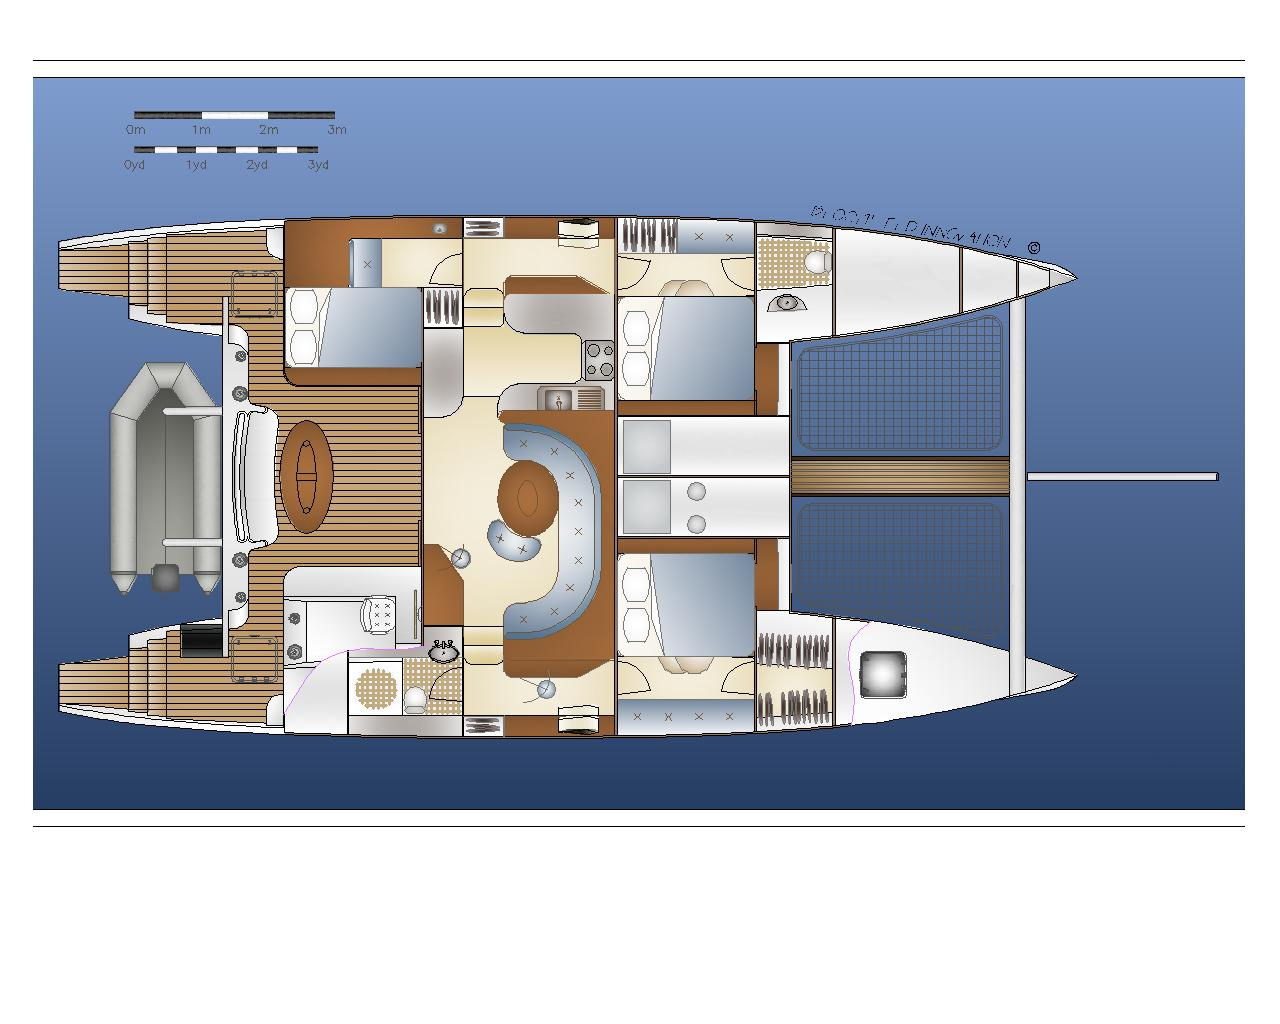 Don t spend your money on catamaran boat plans toxovybys for Build a house kits